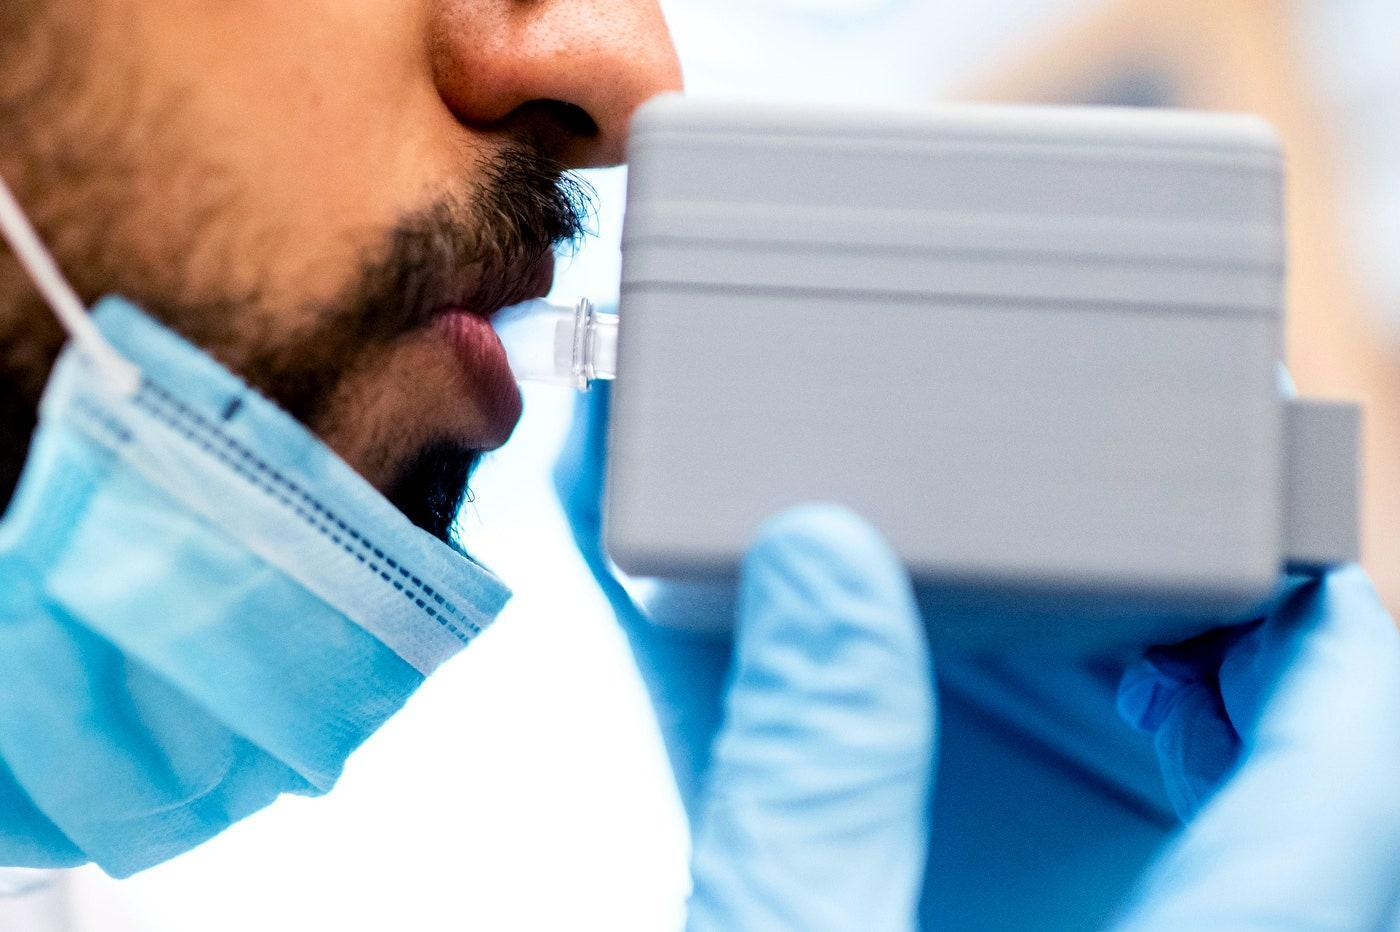 man breathing into breathalyzer